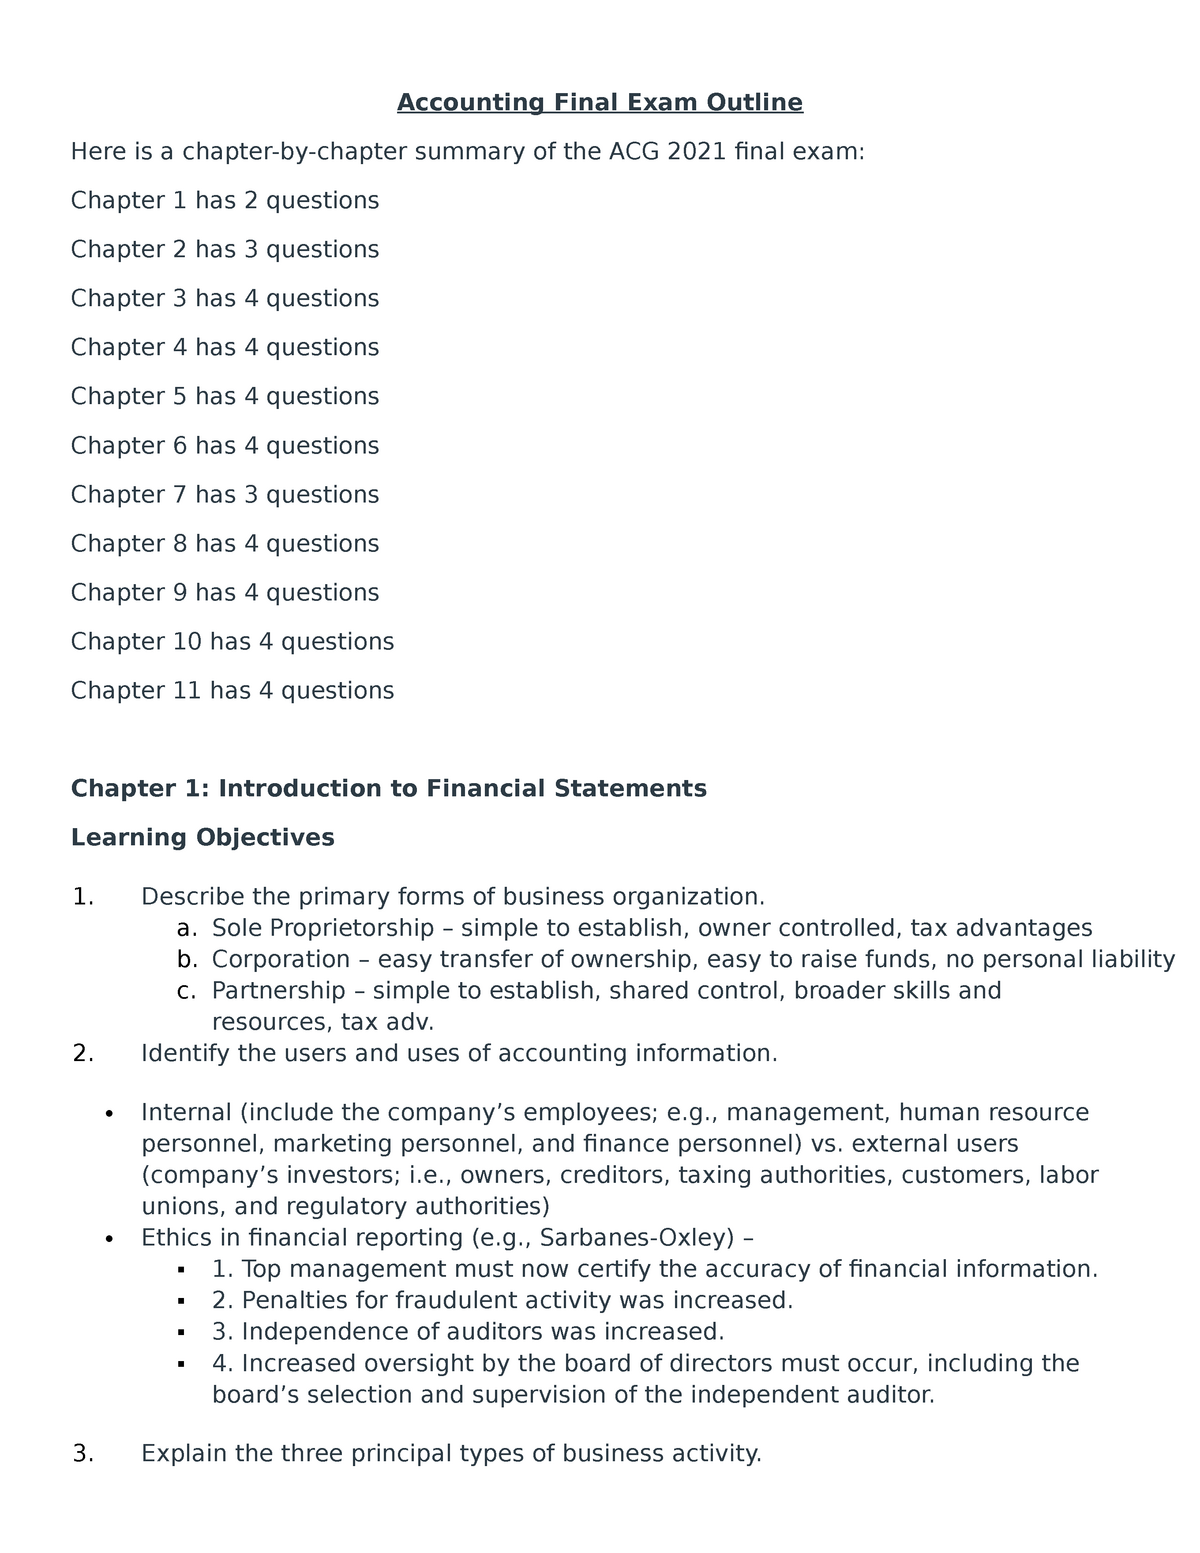 Accounting Final Exam Outline - ACG 2021: Intro Financial Accounting